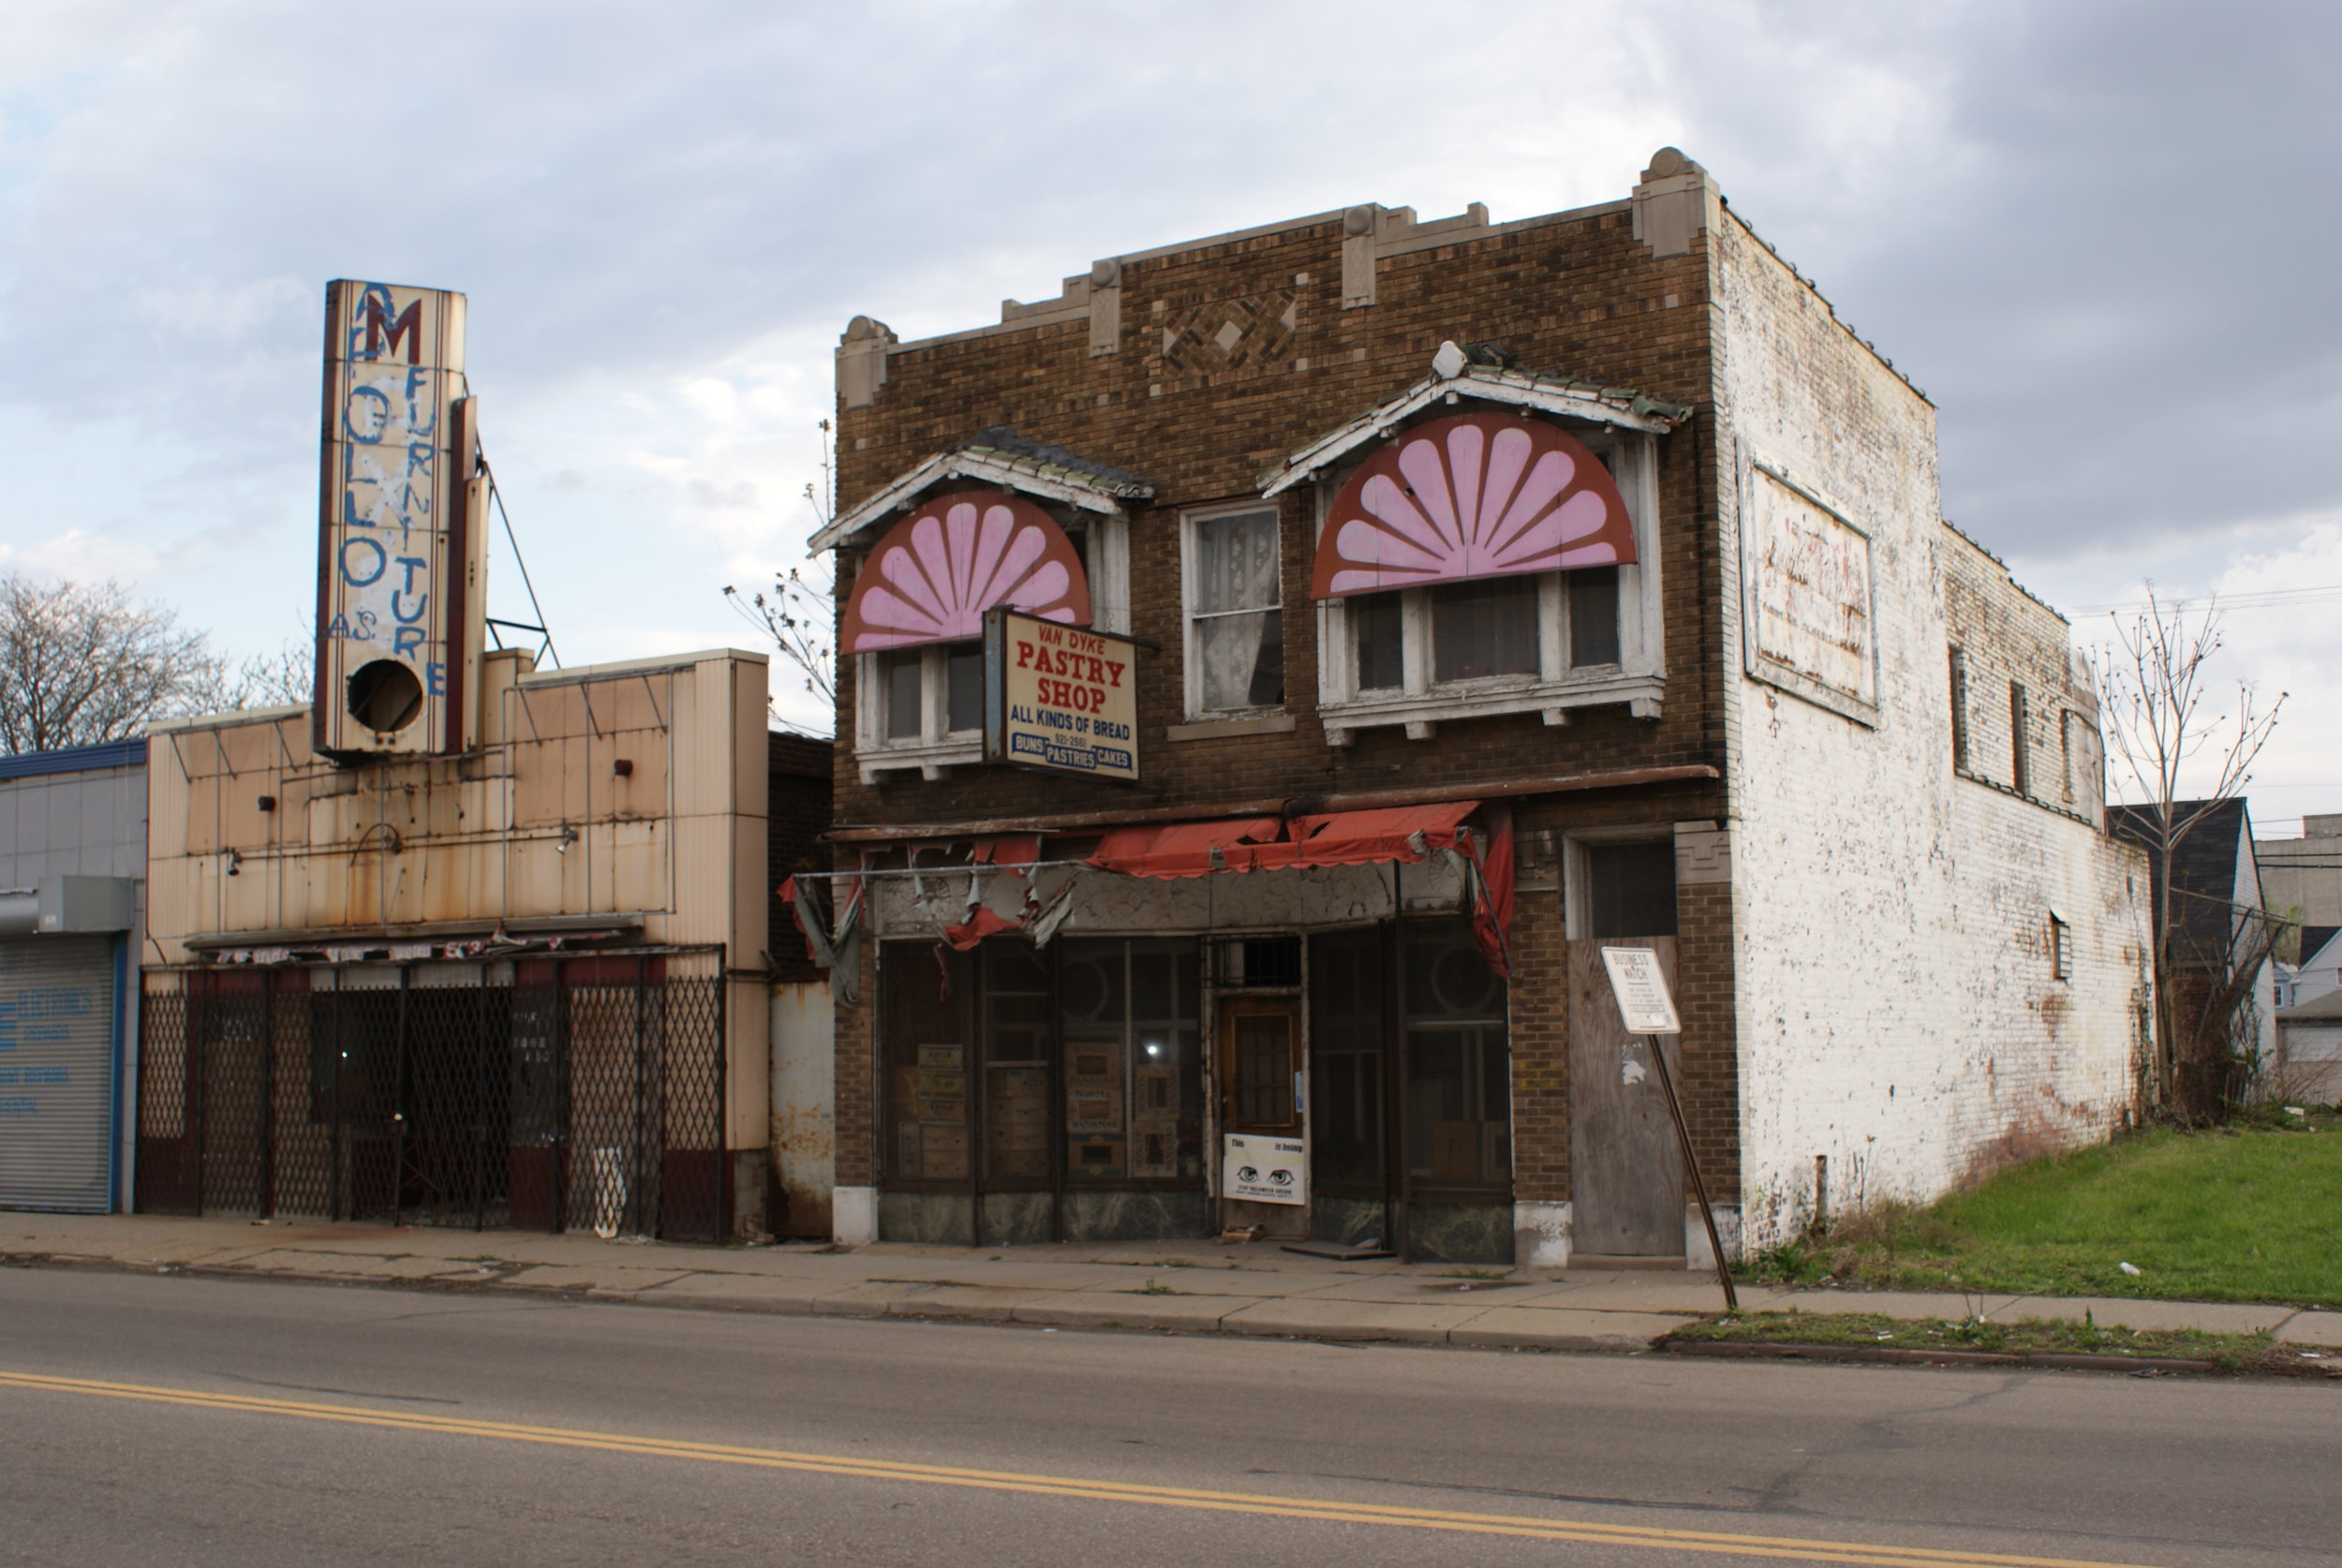 (Left) Apollo Furniture Store sits empty in the old Max's location, (right) Van Dyke Pastry Shop after it was left abandoned. Photograph taken pre-arson in May of 2008 by Robert Monaghan.  SOURCE